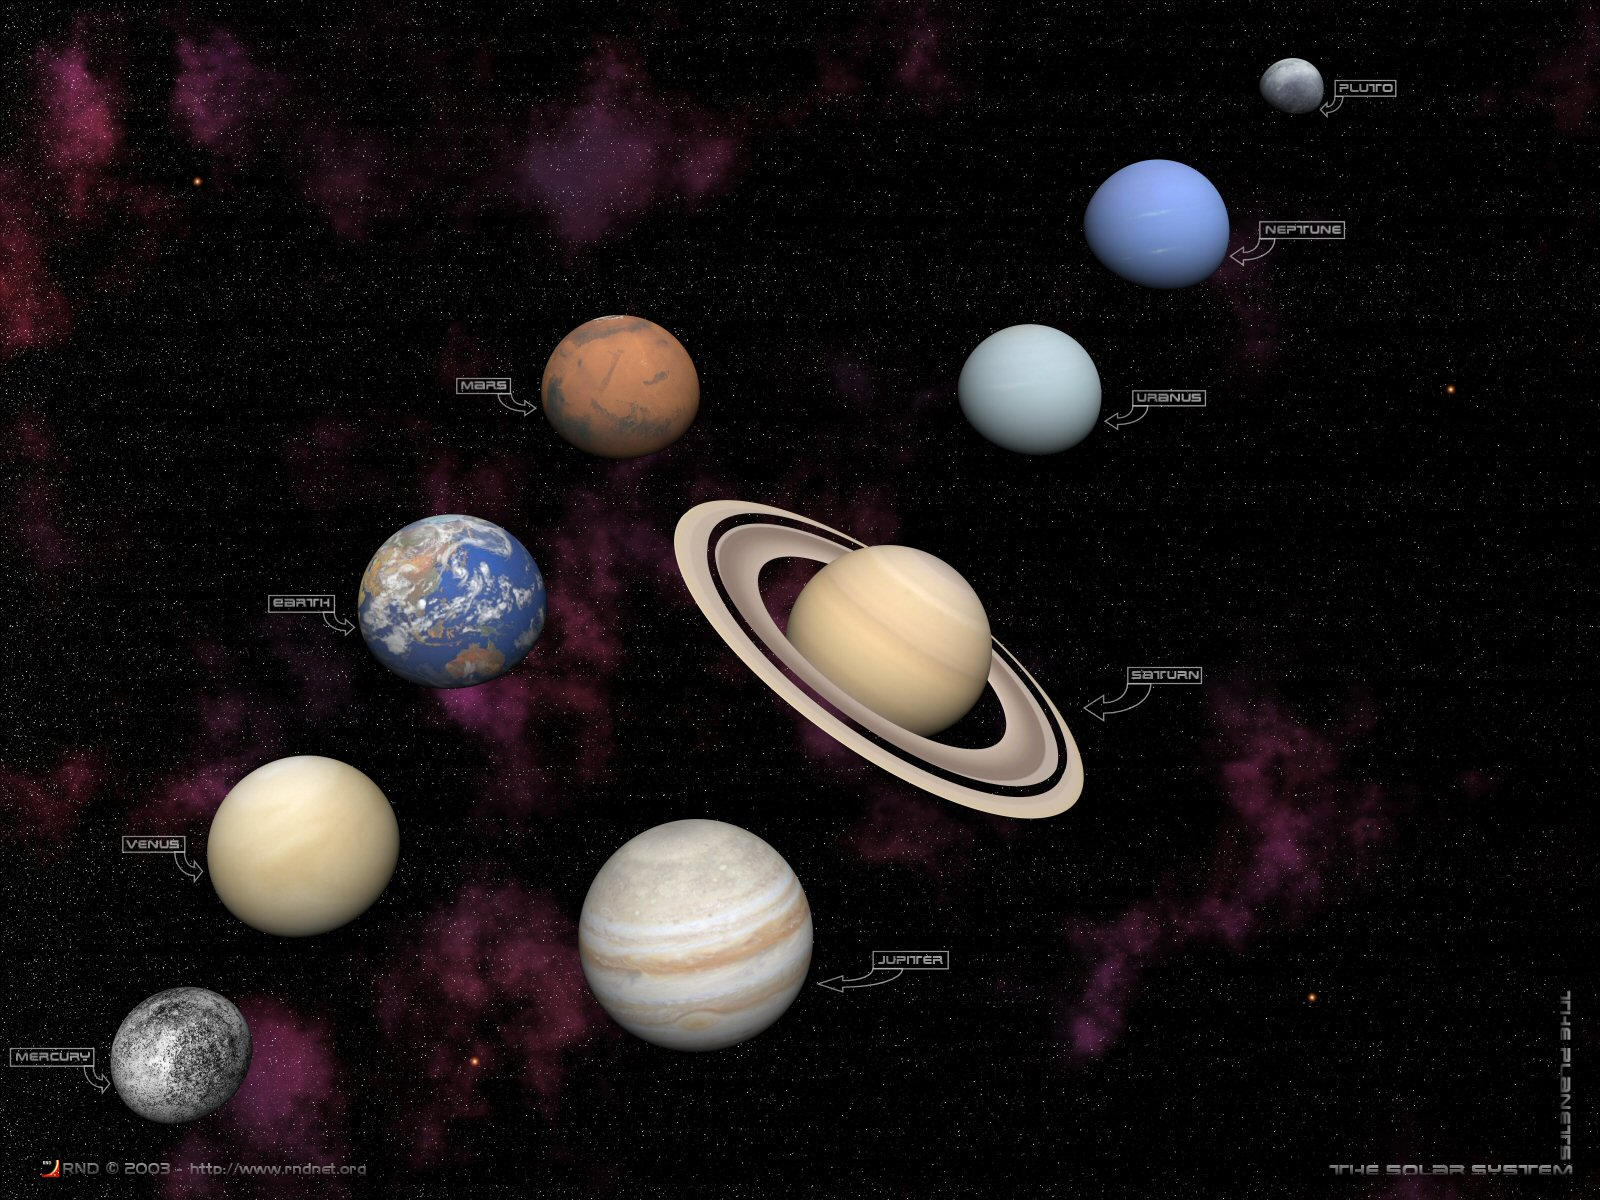 The Planets Poster by swarfega